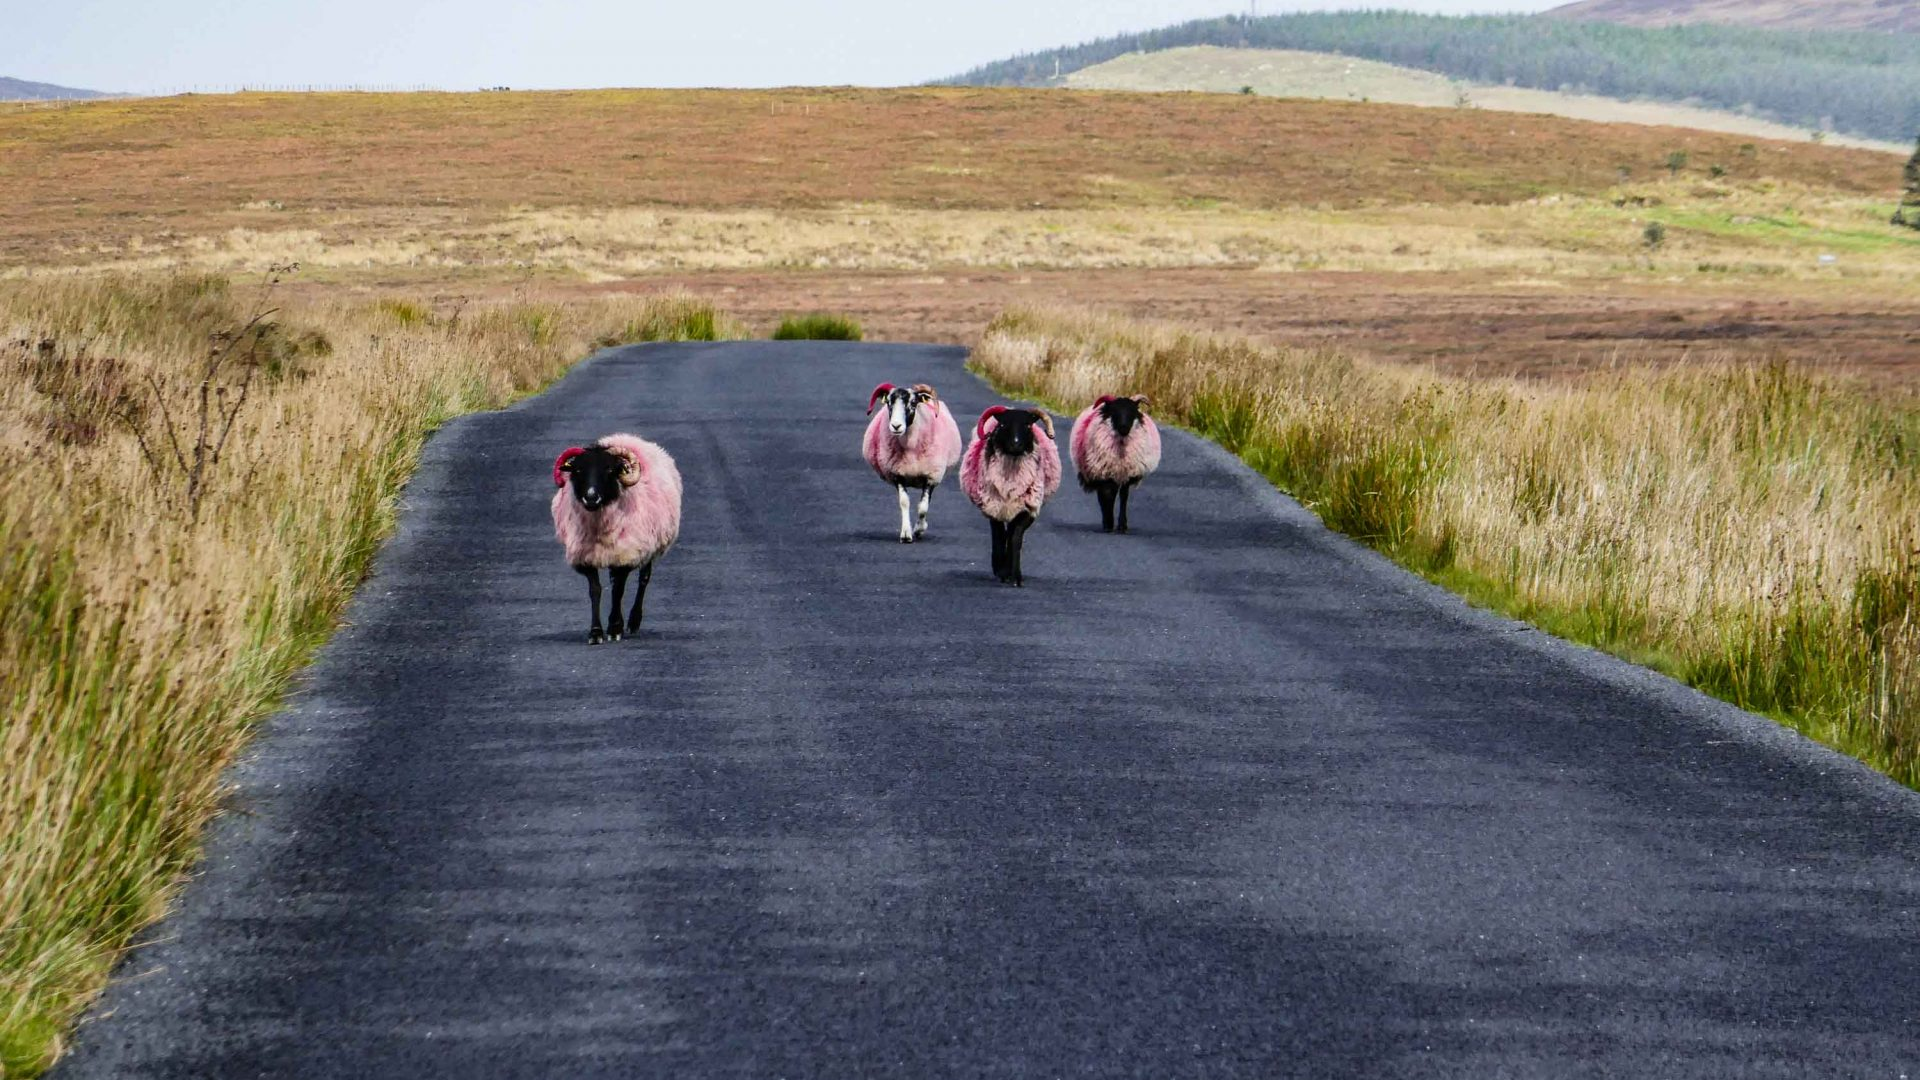 Sheep on the road nearing Malin.